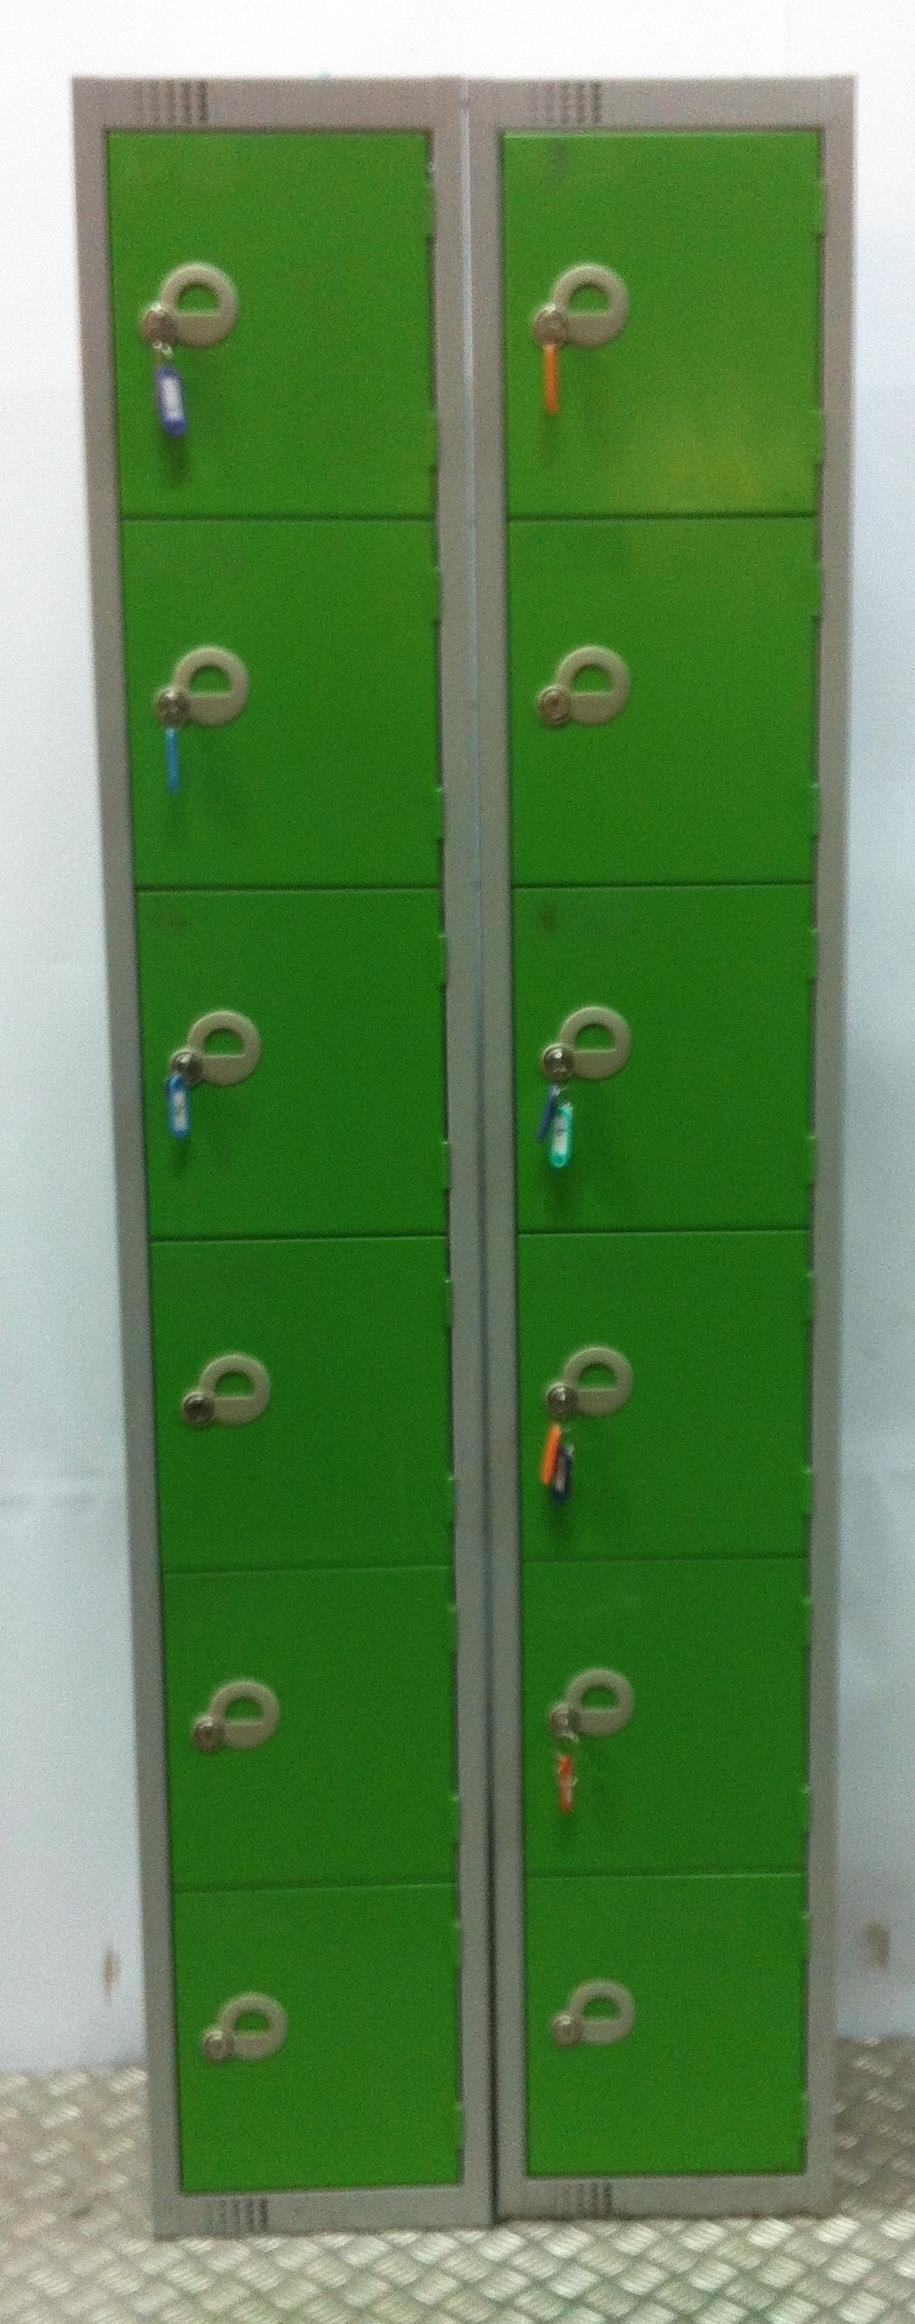 Lot 46 - 2 x Single Locker Stacks with 6 Lockers